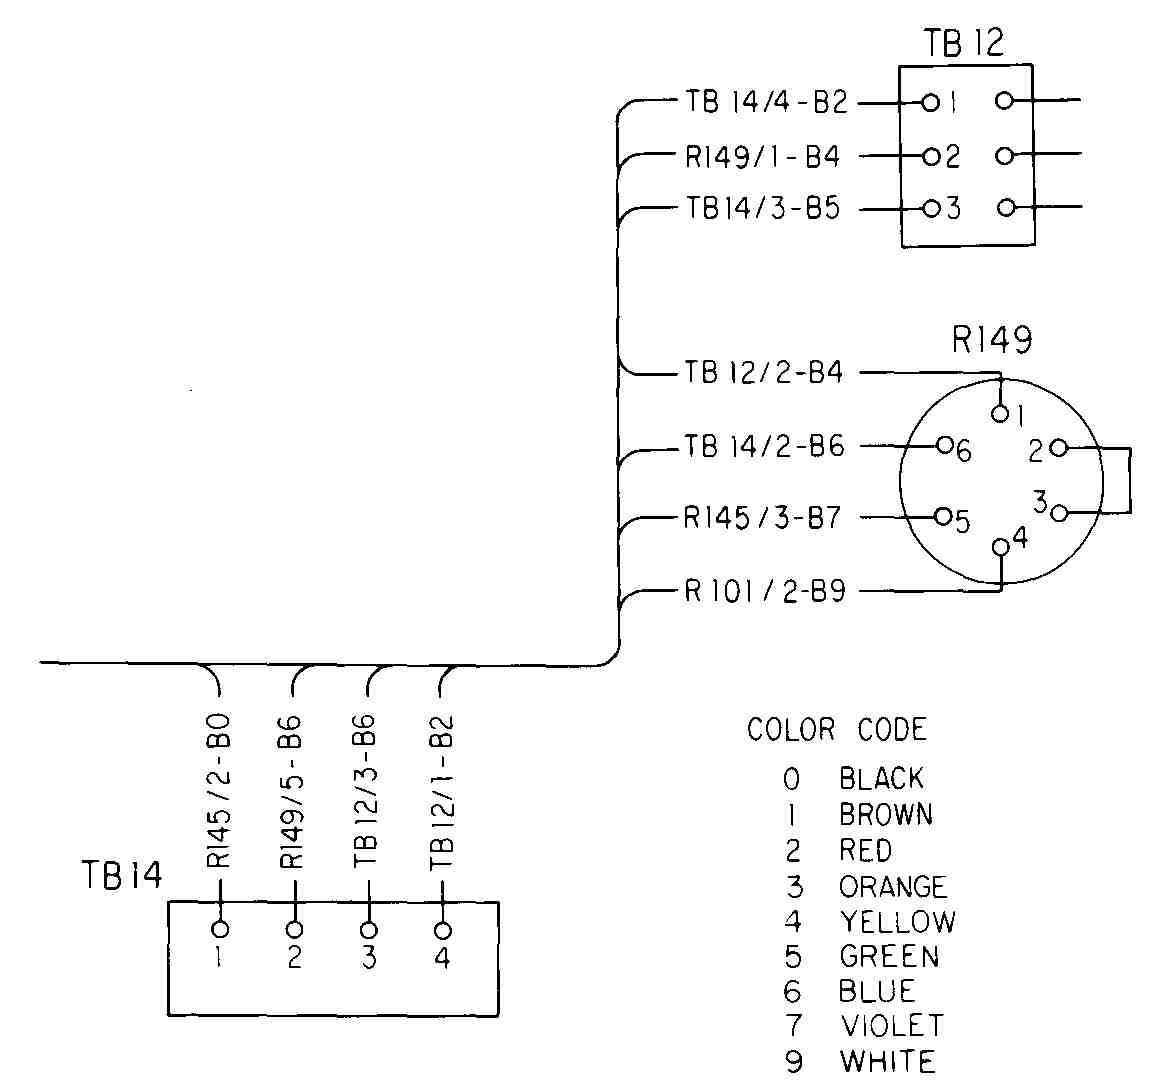 Ansi Wiring Diagram Format Manufacturing Process Flow Cabling And Chassis Drawings Part 1 Map 7 Of